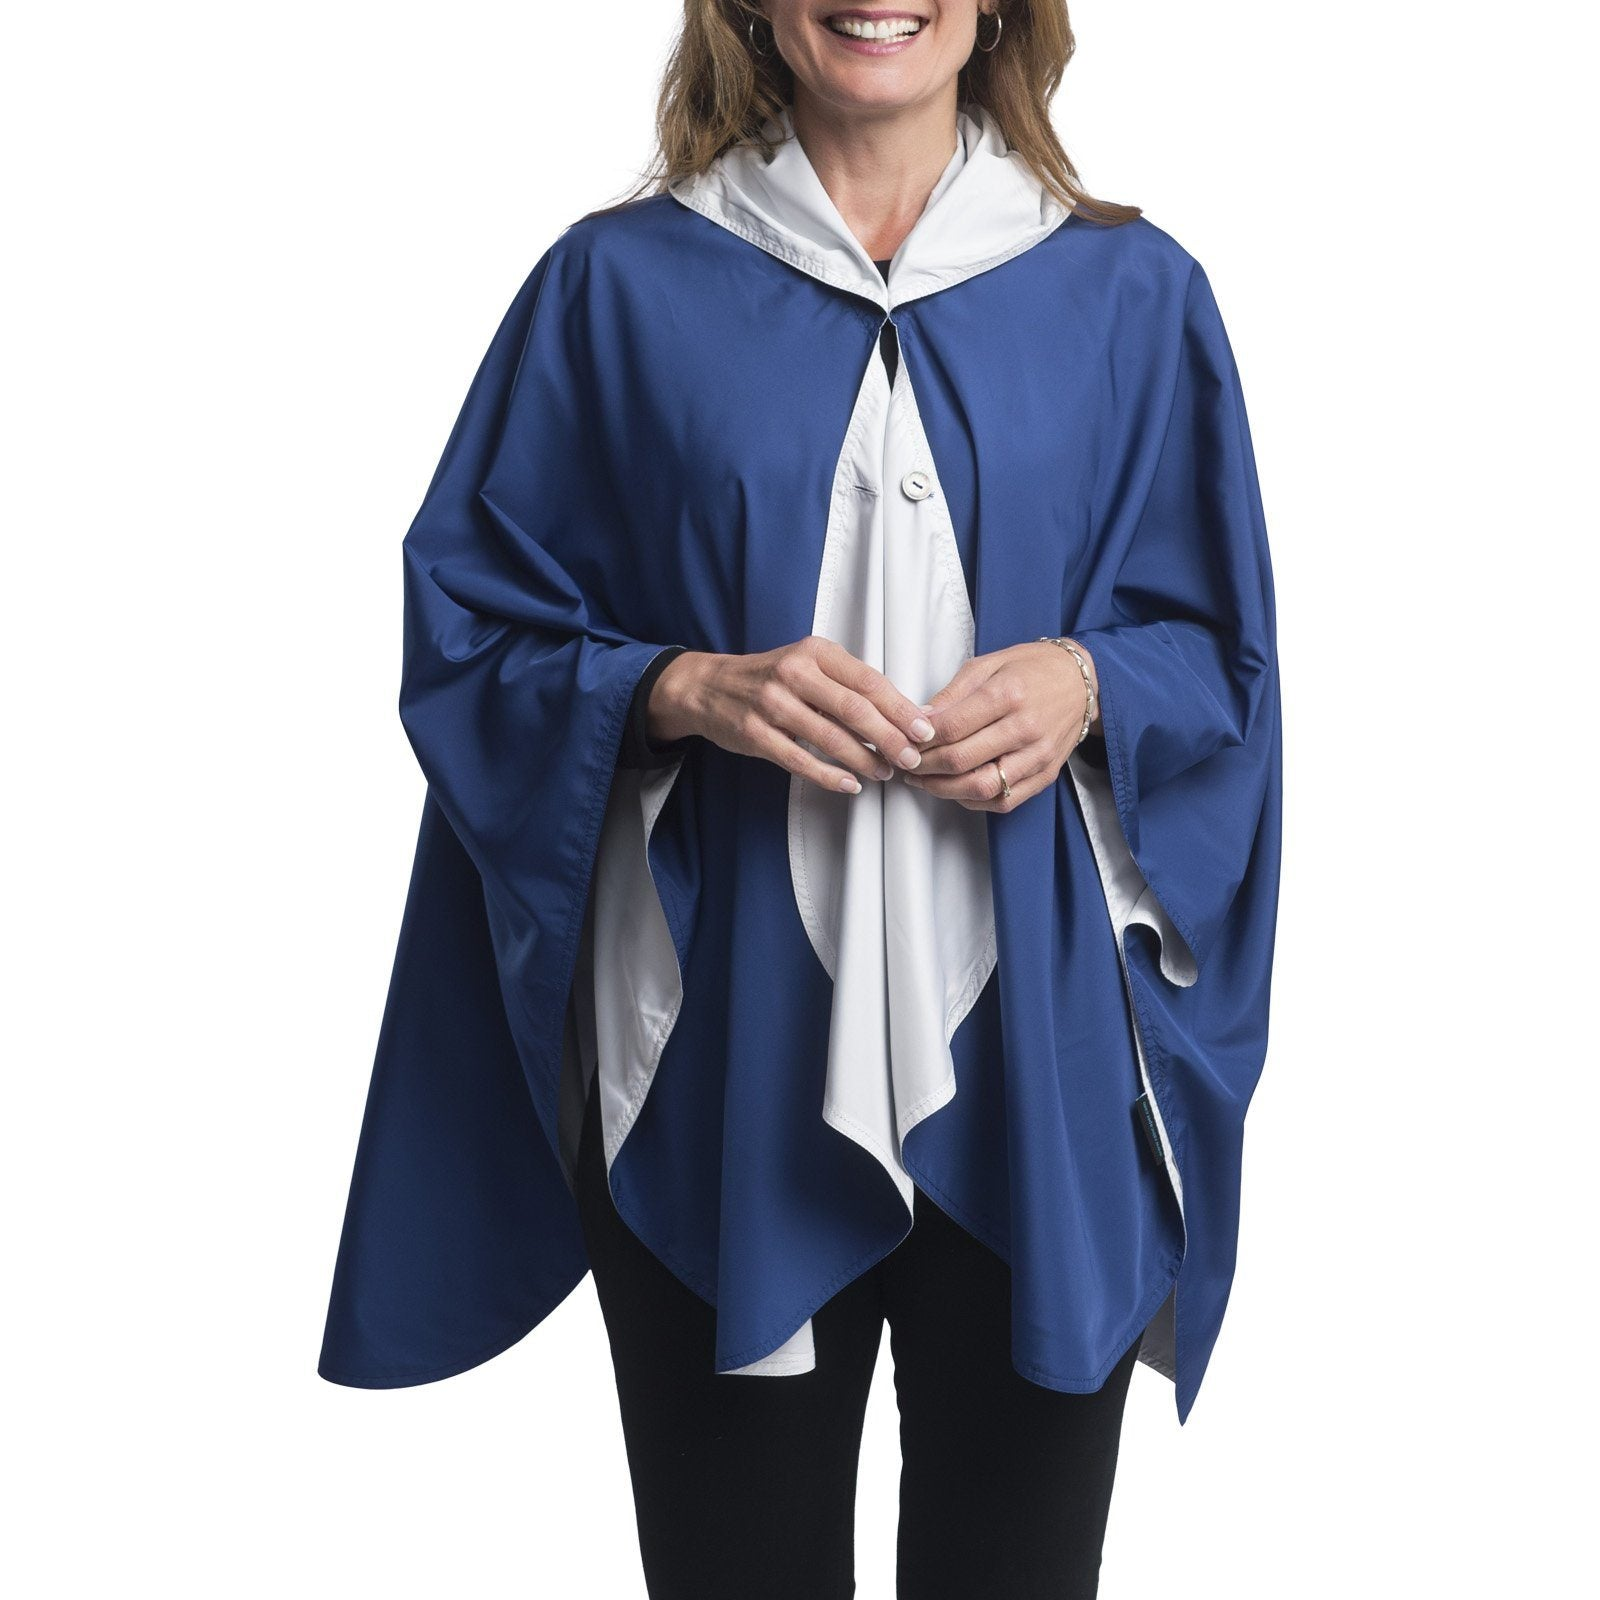 SpiritCaper Navy & White Wind & Rainproof Sports Cape